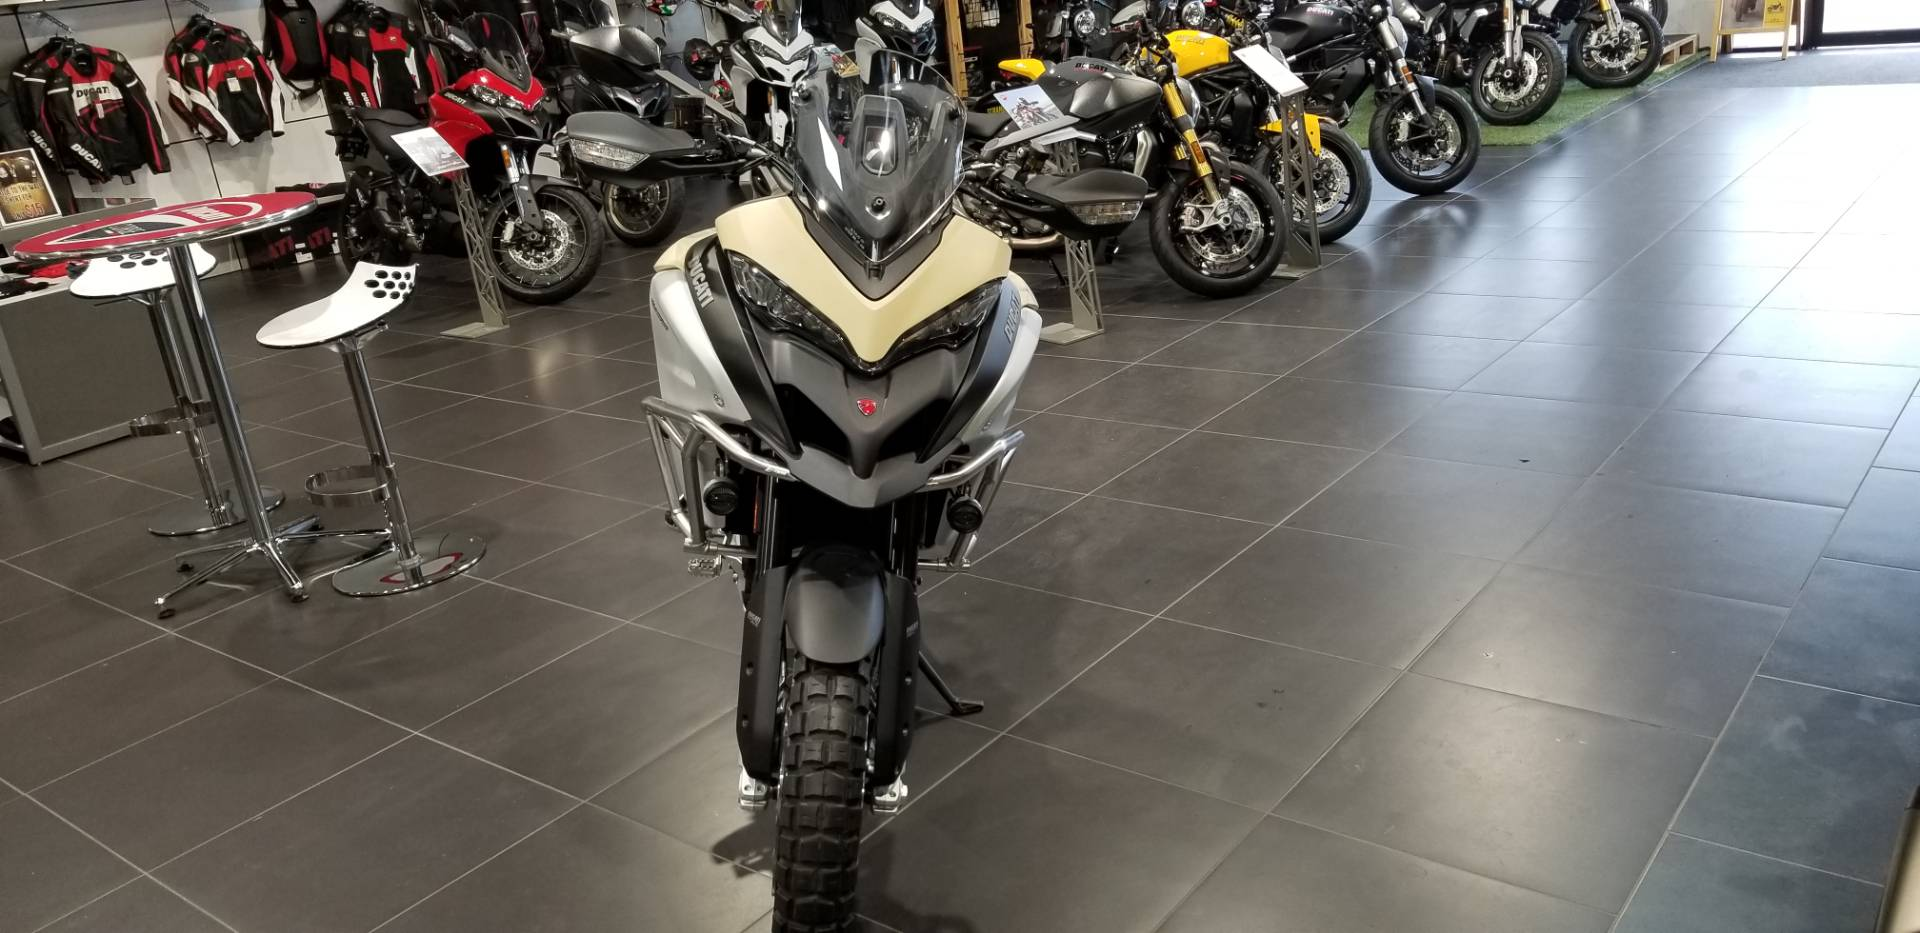 2018 Ducati Multistrada 1200 Enduro Pro in Gaithersburg, Maryland